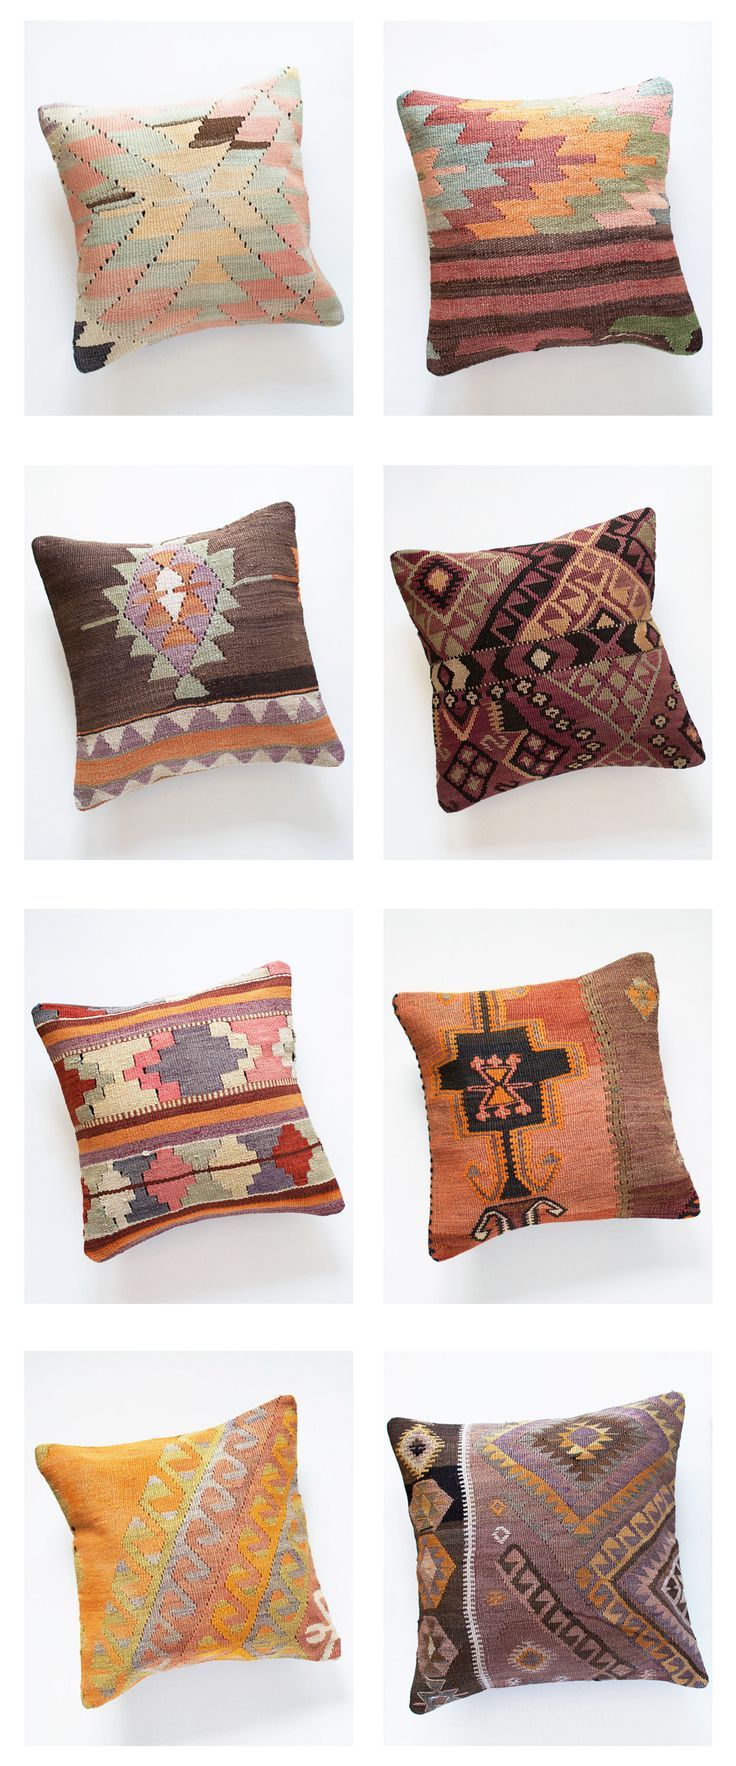 The best place to buy kilim pillows!